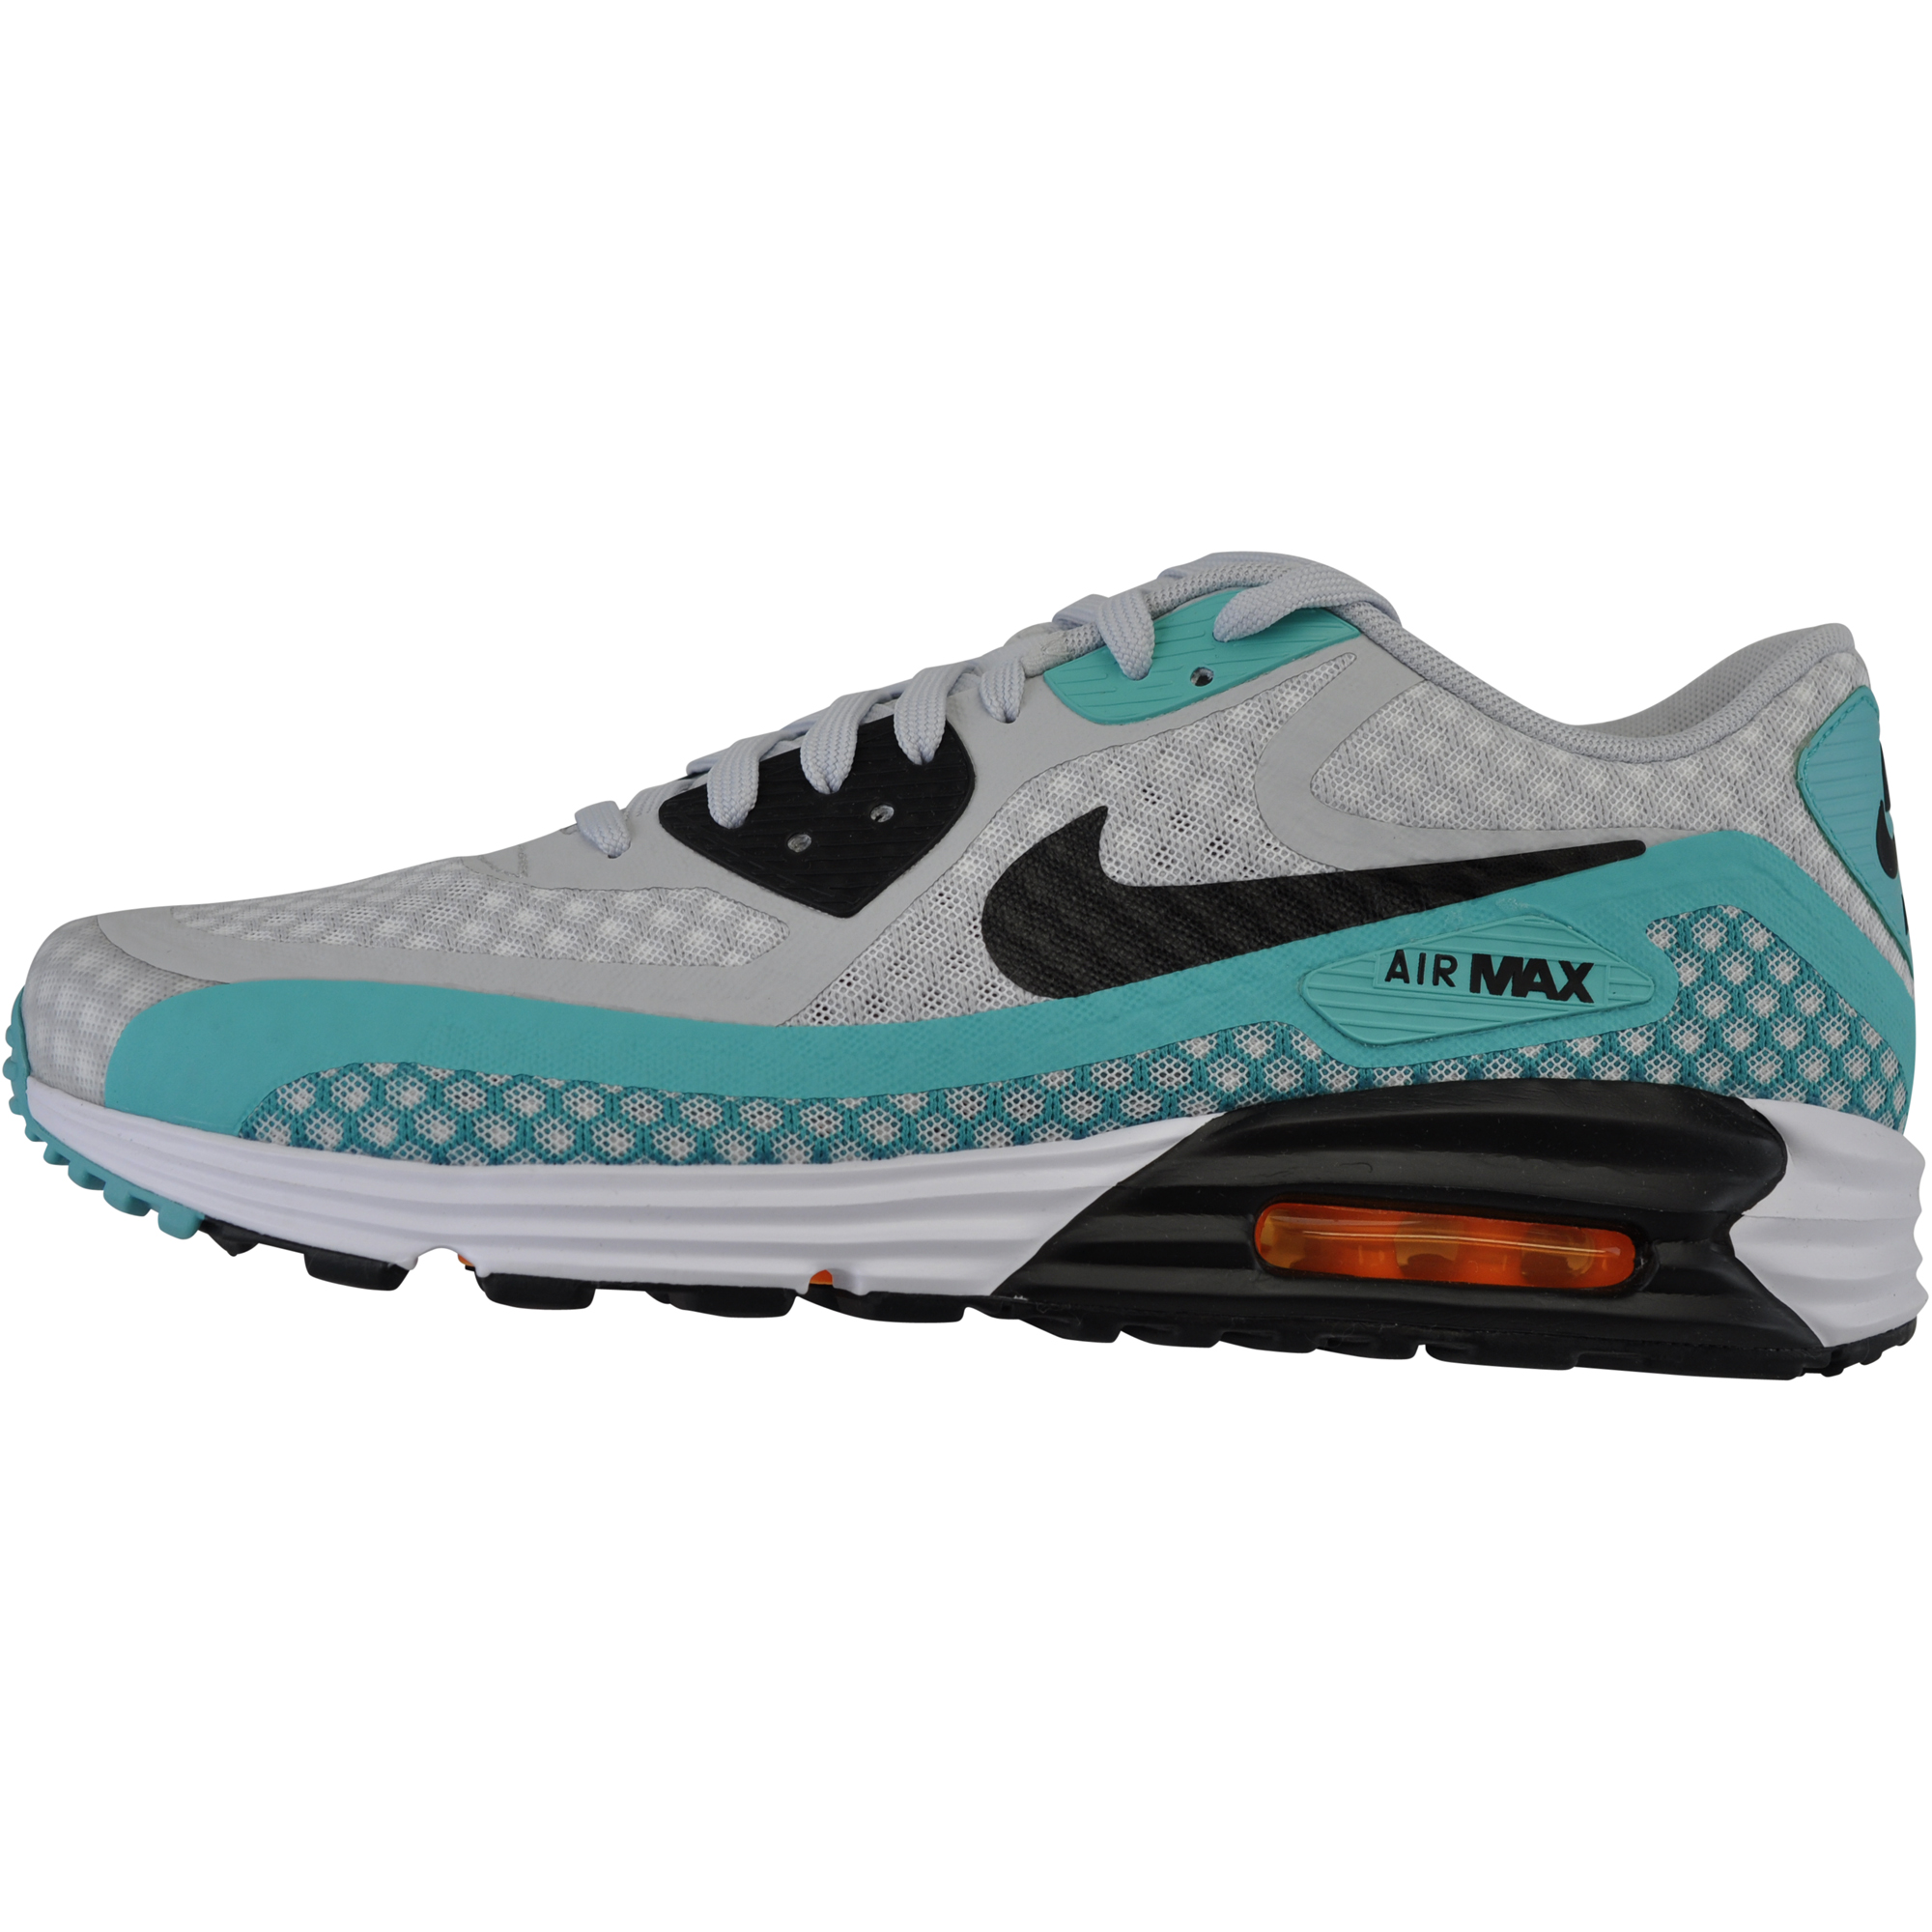 be51099c494c Nike Sb Clutch Shoes For Heel Support